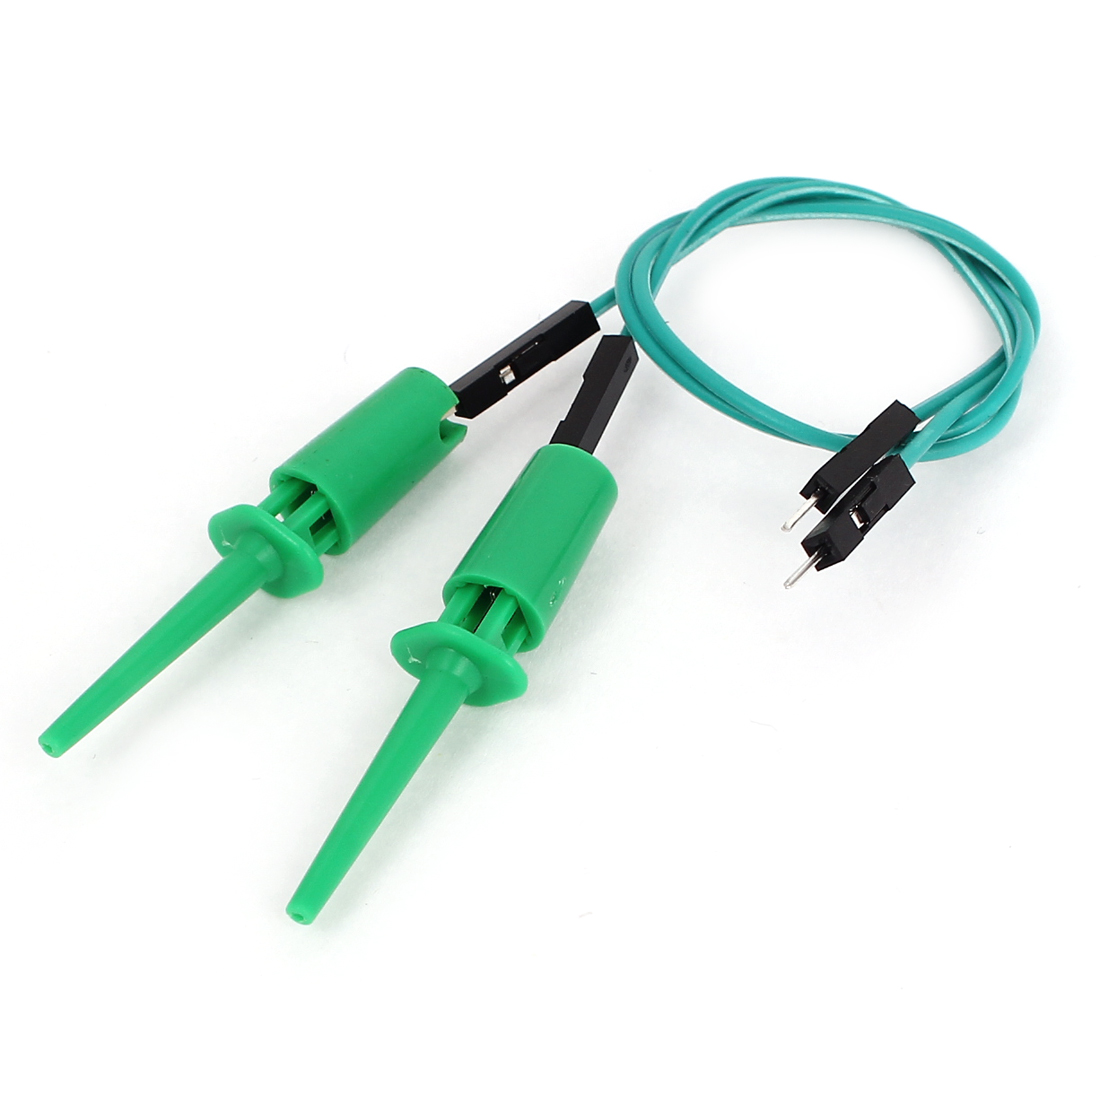 2pcs Green Plastic Covered Insulation F/M Testing Test Lead Hook Clip Clamp